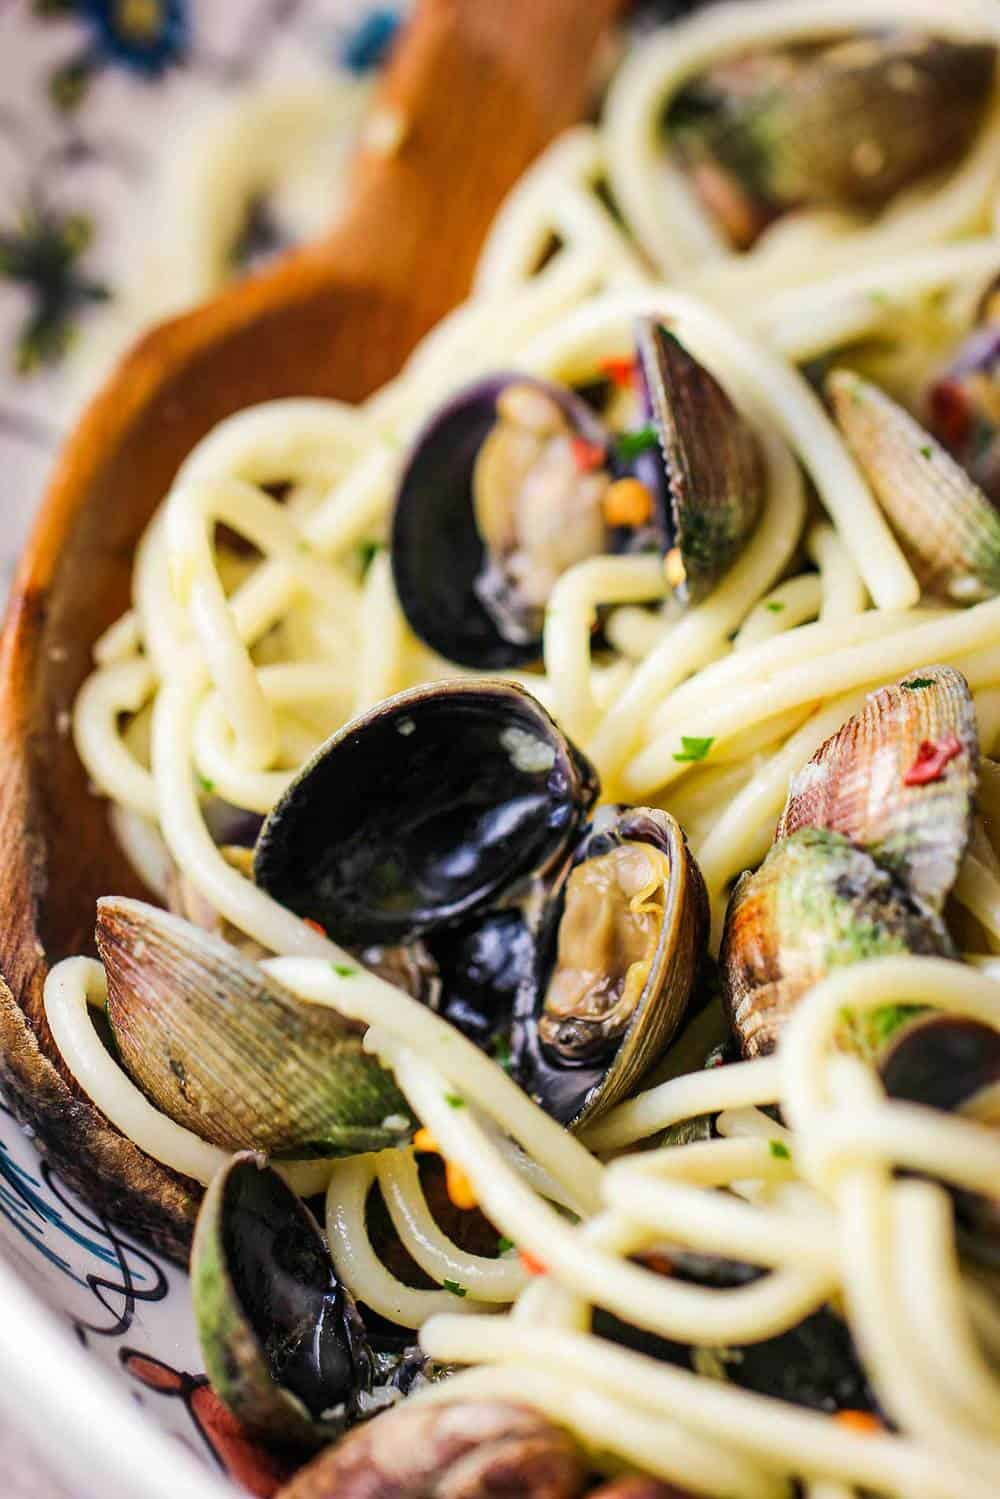 A close up view of cooked spaghetti vongole in a past bowl.